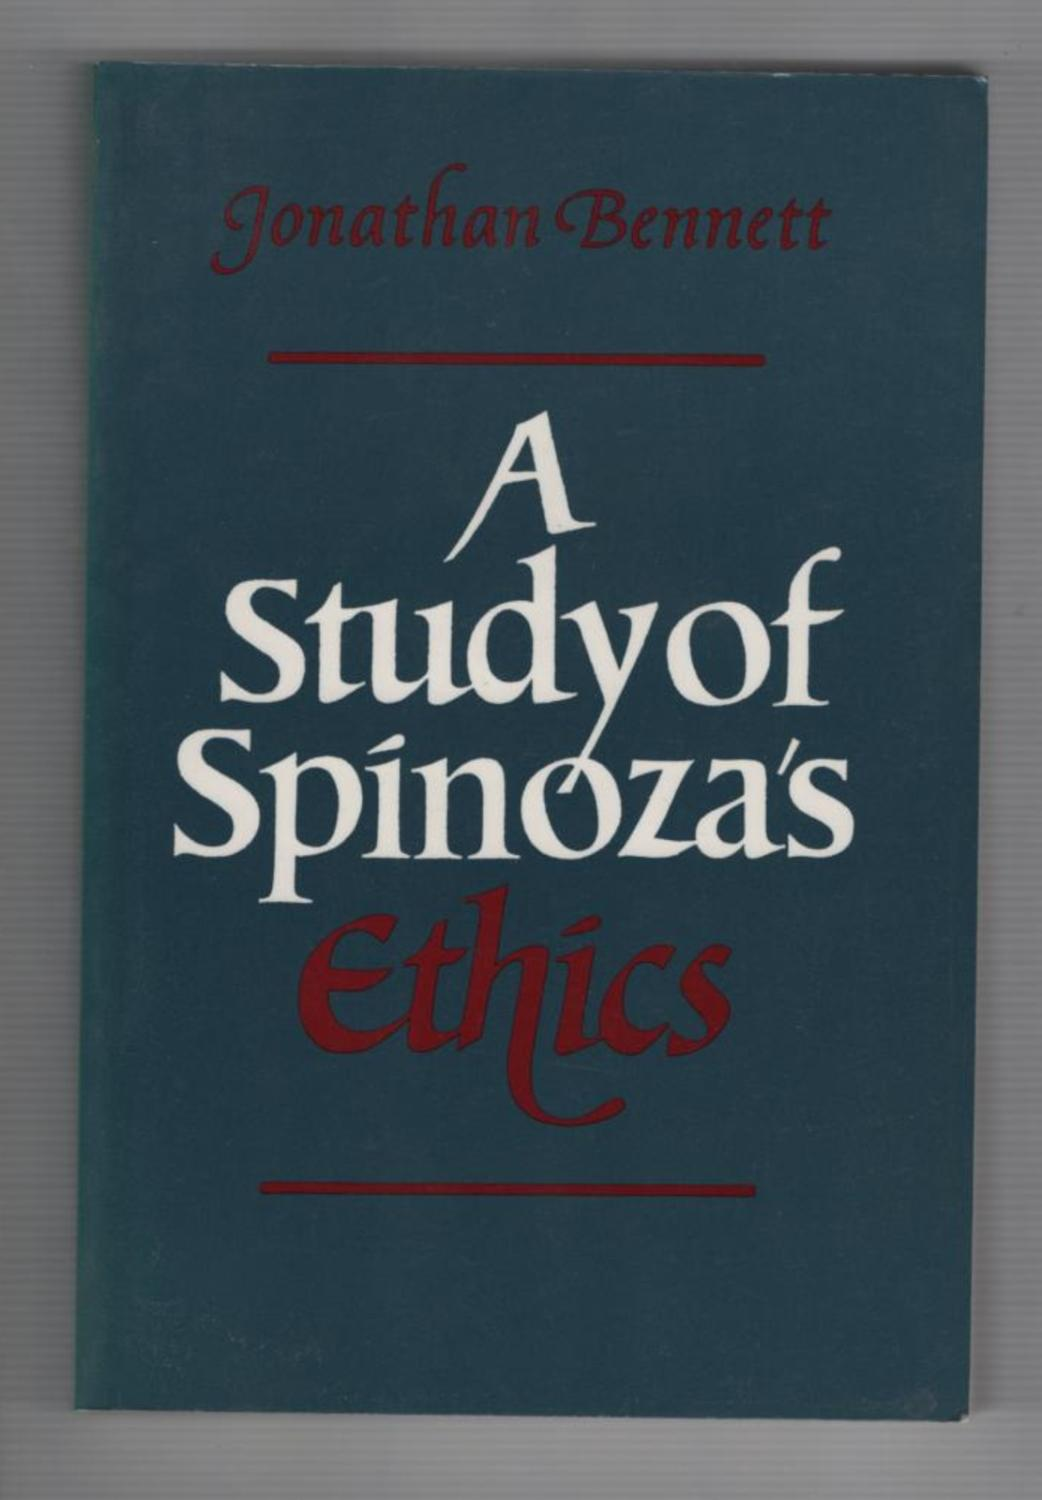 A Study of Spinozas Ethics